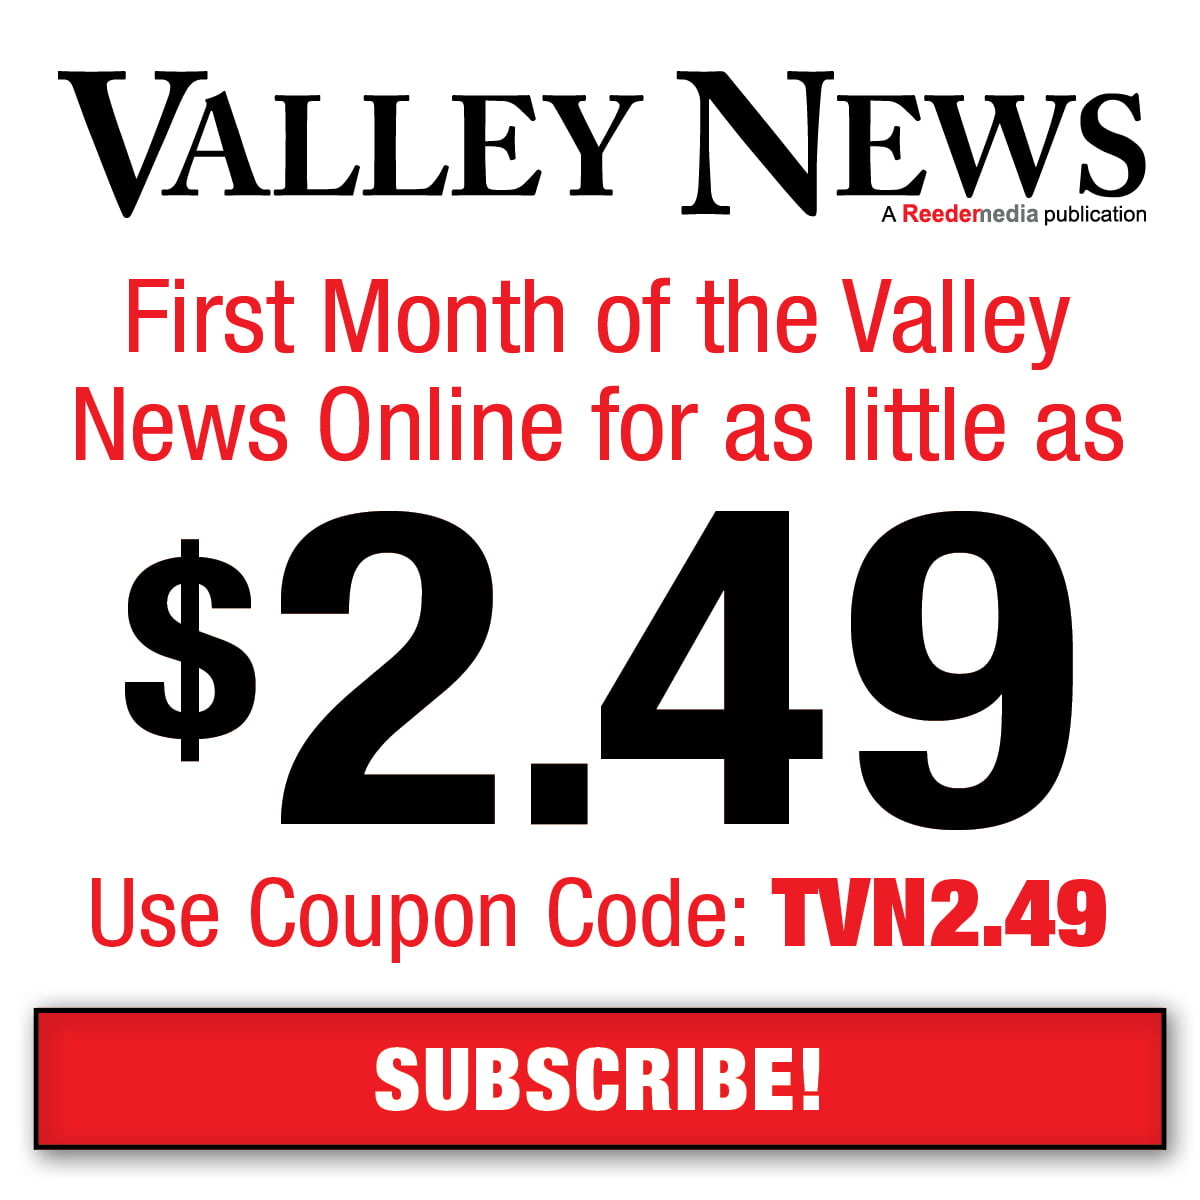 Subscribe to Valley News.